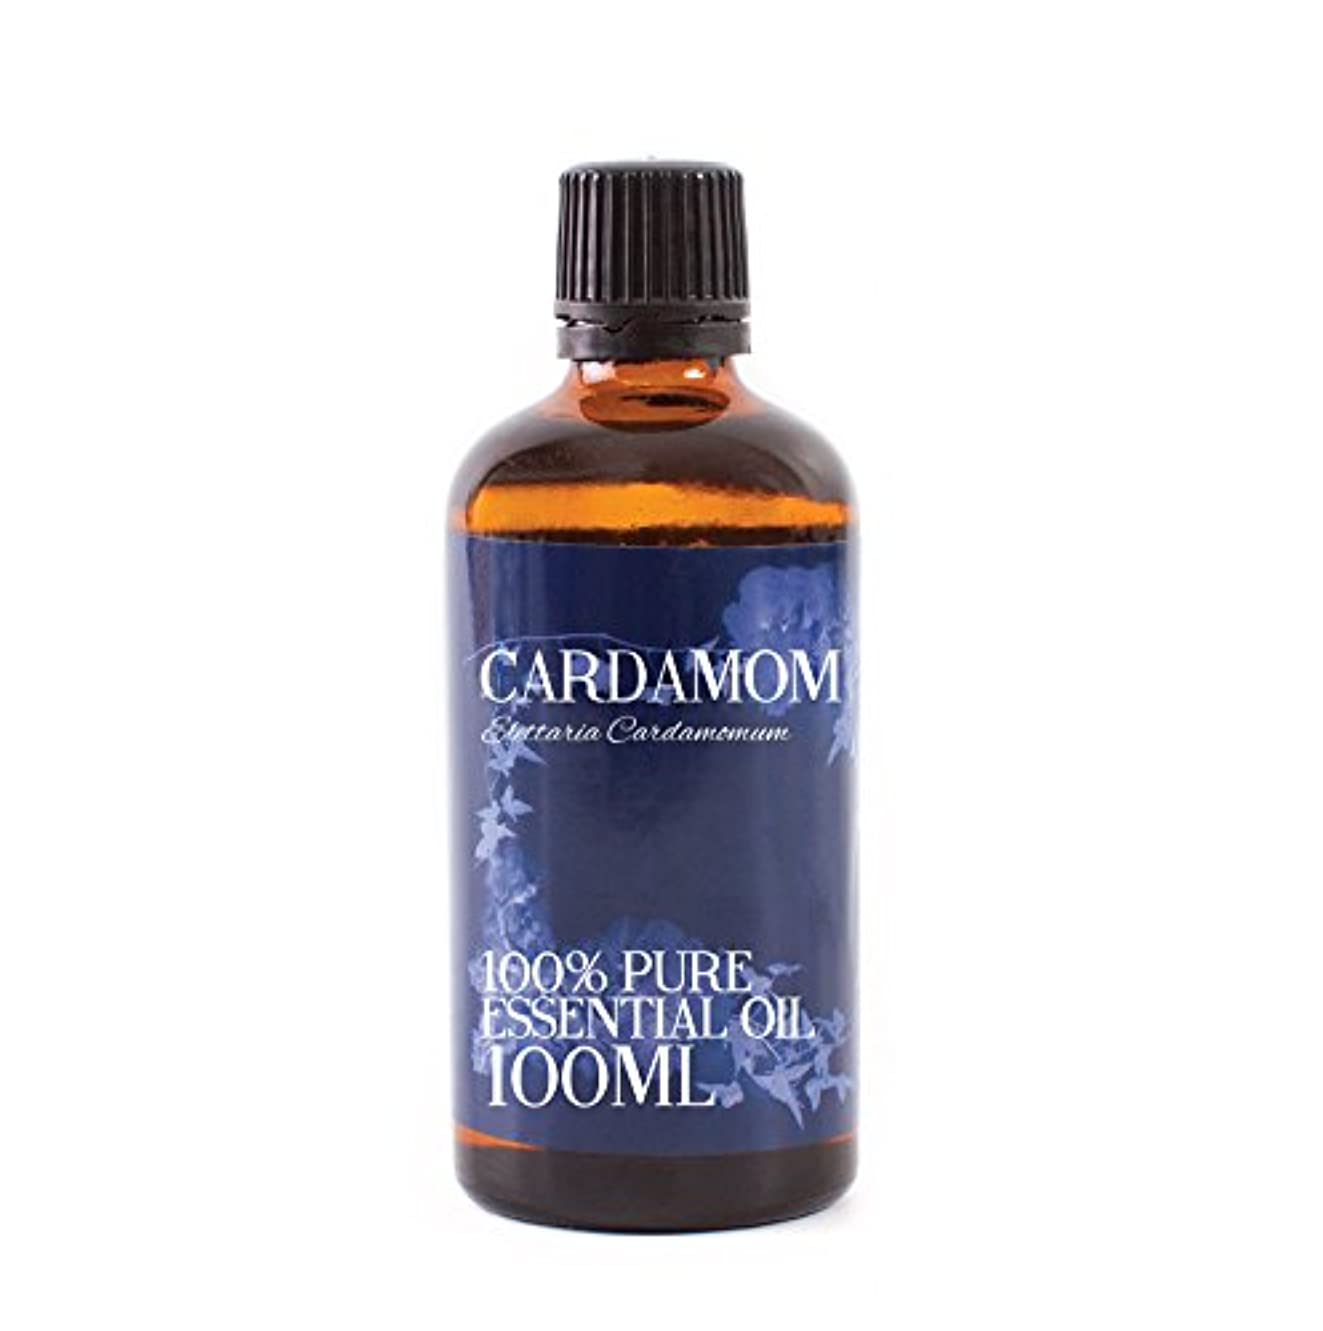 ポルトガル語精通した余裕があるMystic Moments | Cardamom Essential Oil - 100ml - 100% pure